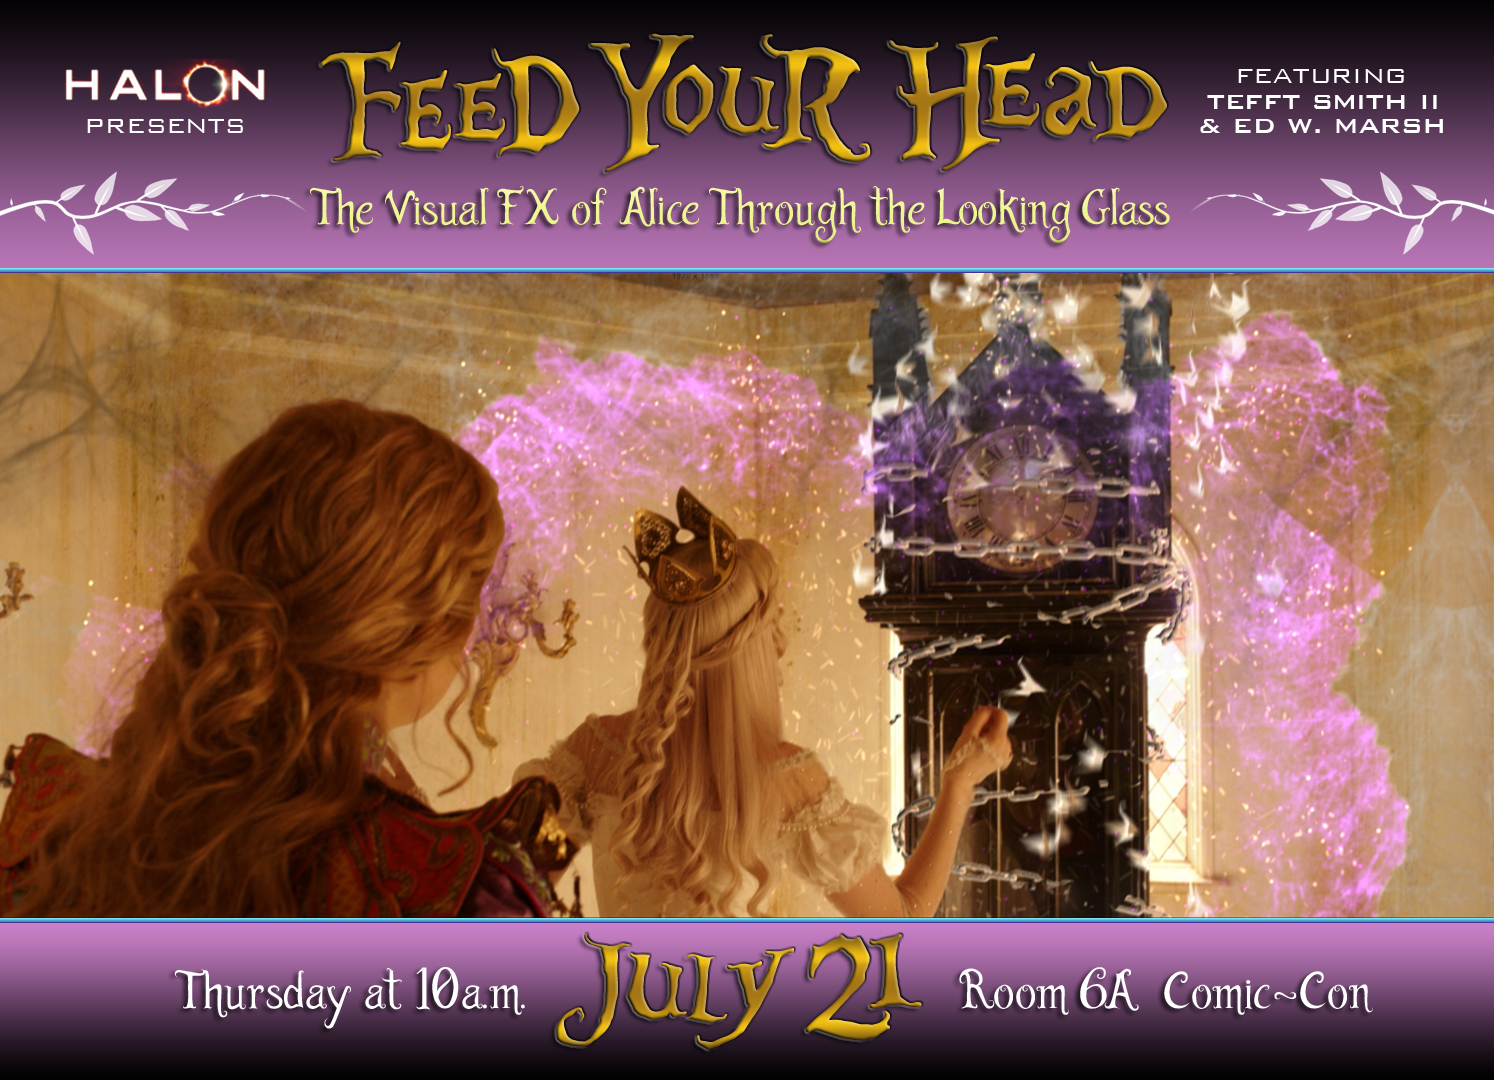 As the Dormouse Said, Feed Your Head: The VFX of Alice Through the Looking Glass Panel at SDCC!